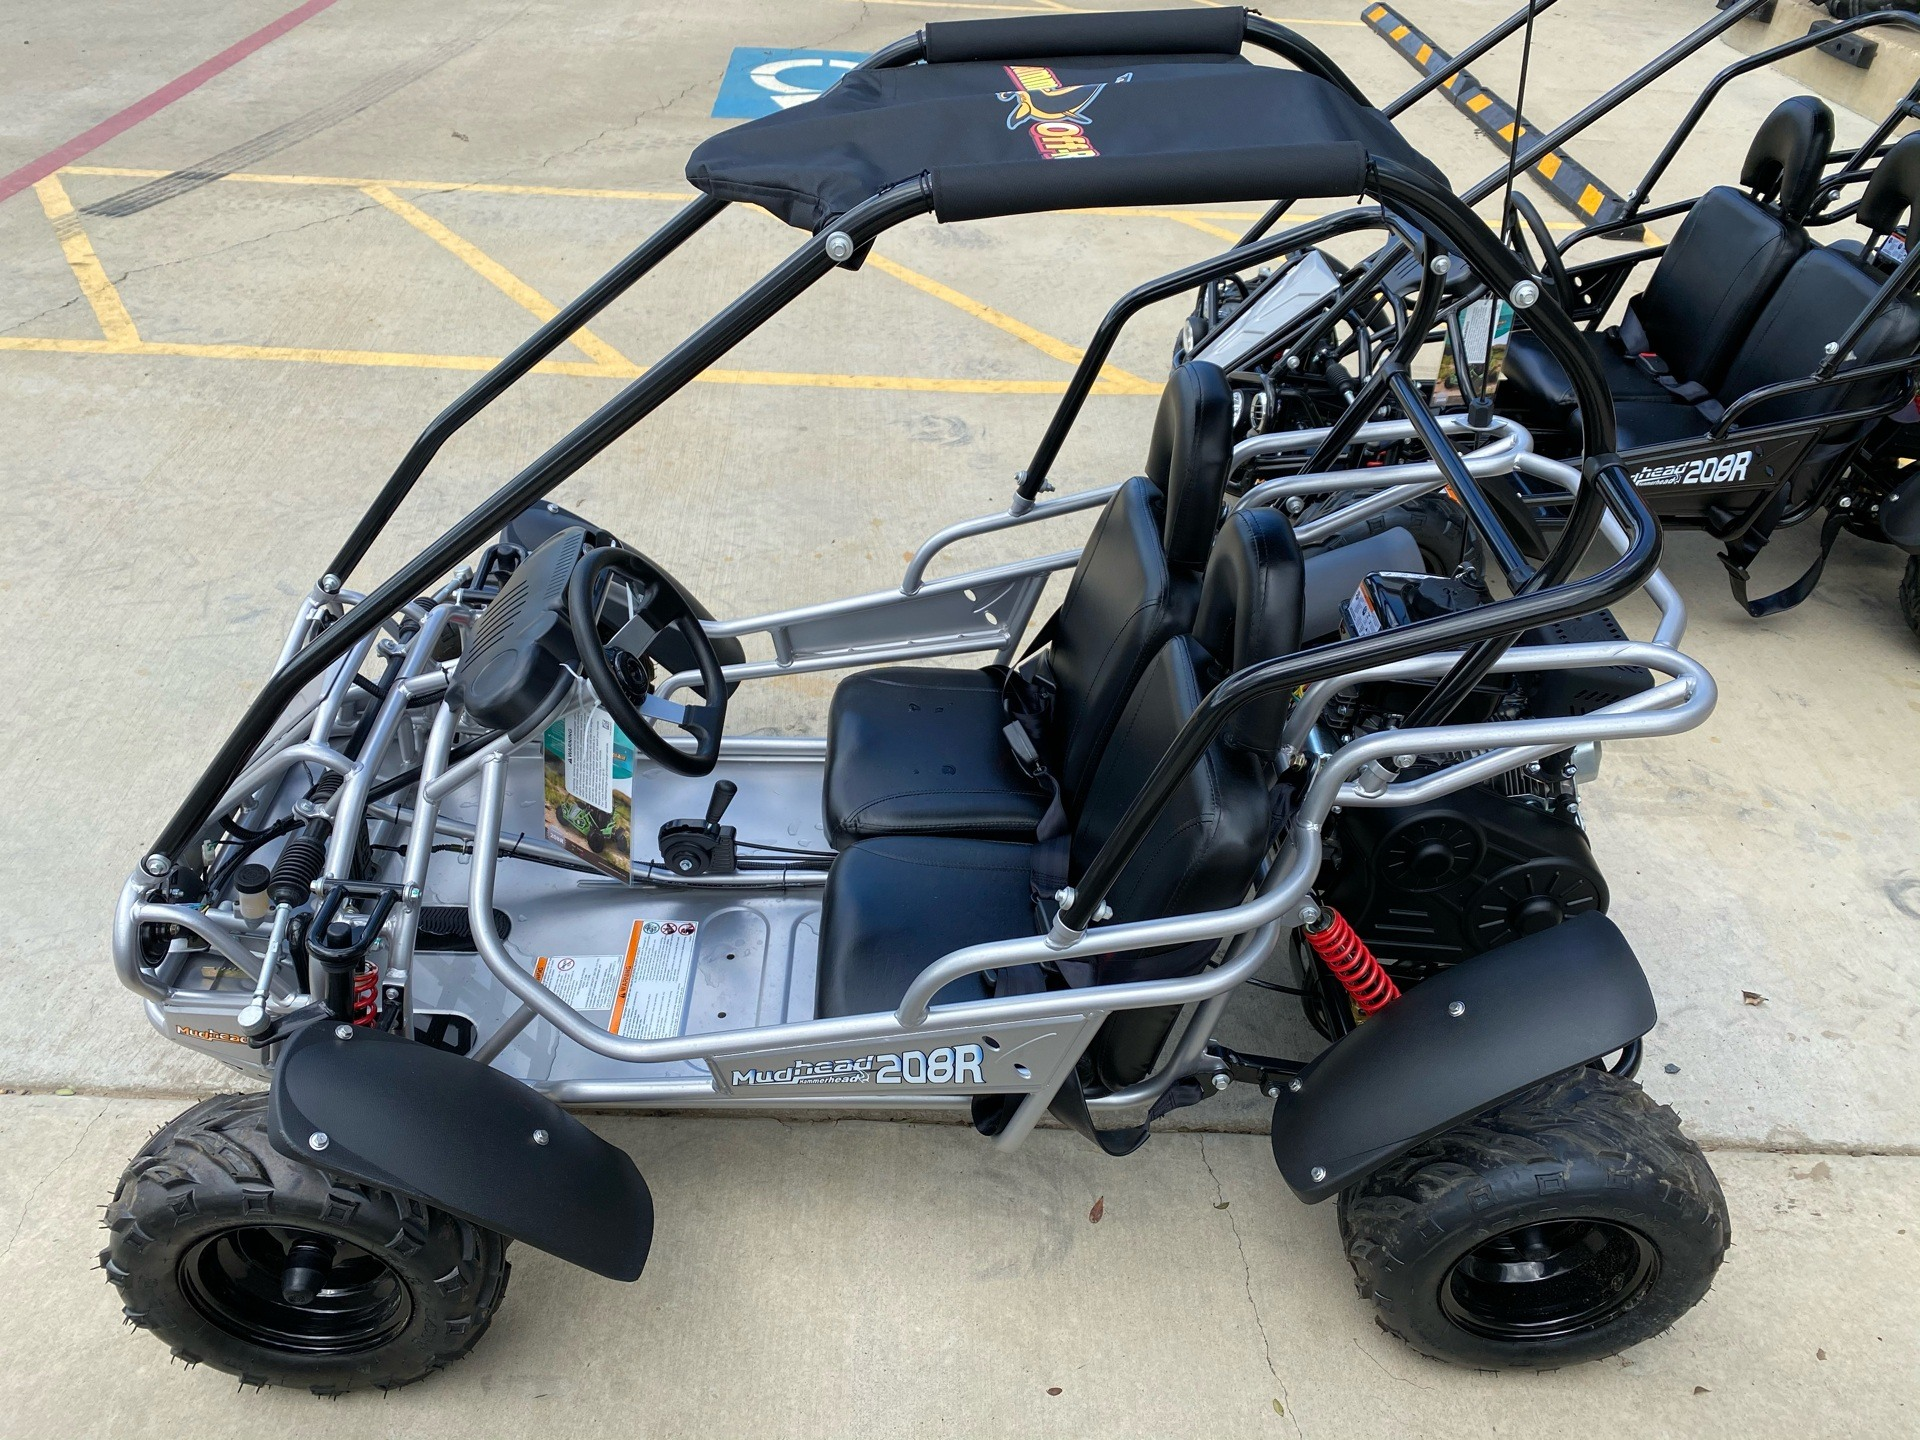 2020 Hammerhead Off-Road MudHead 208R in Marshall, Texas - Photo 2